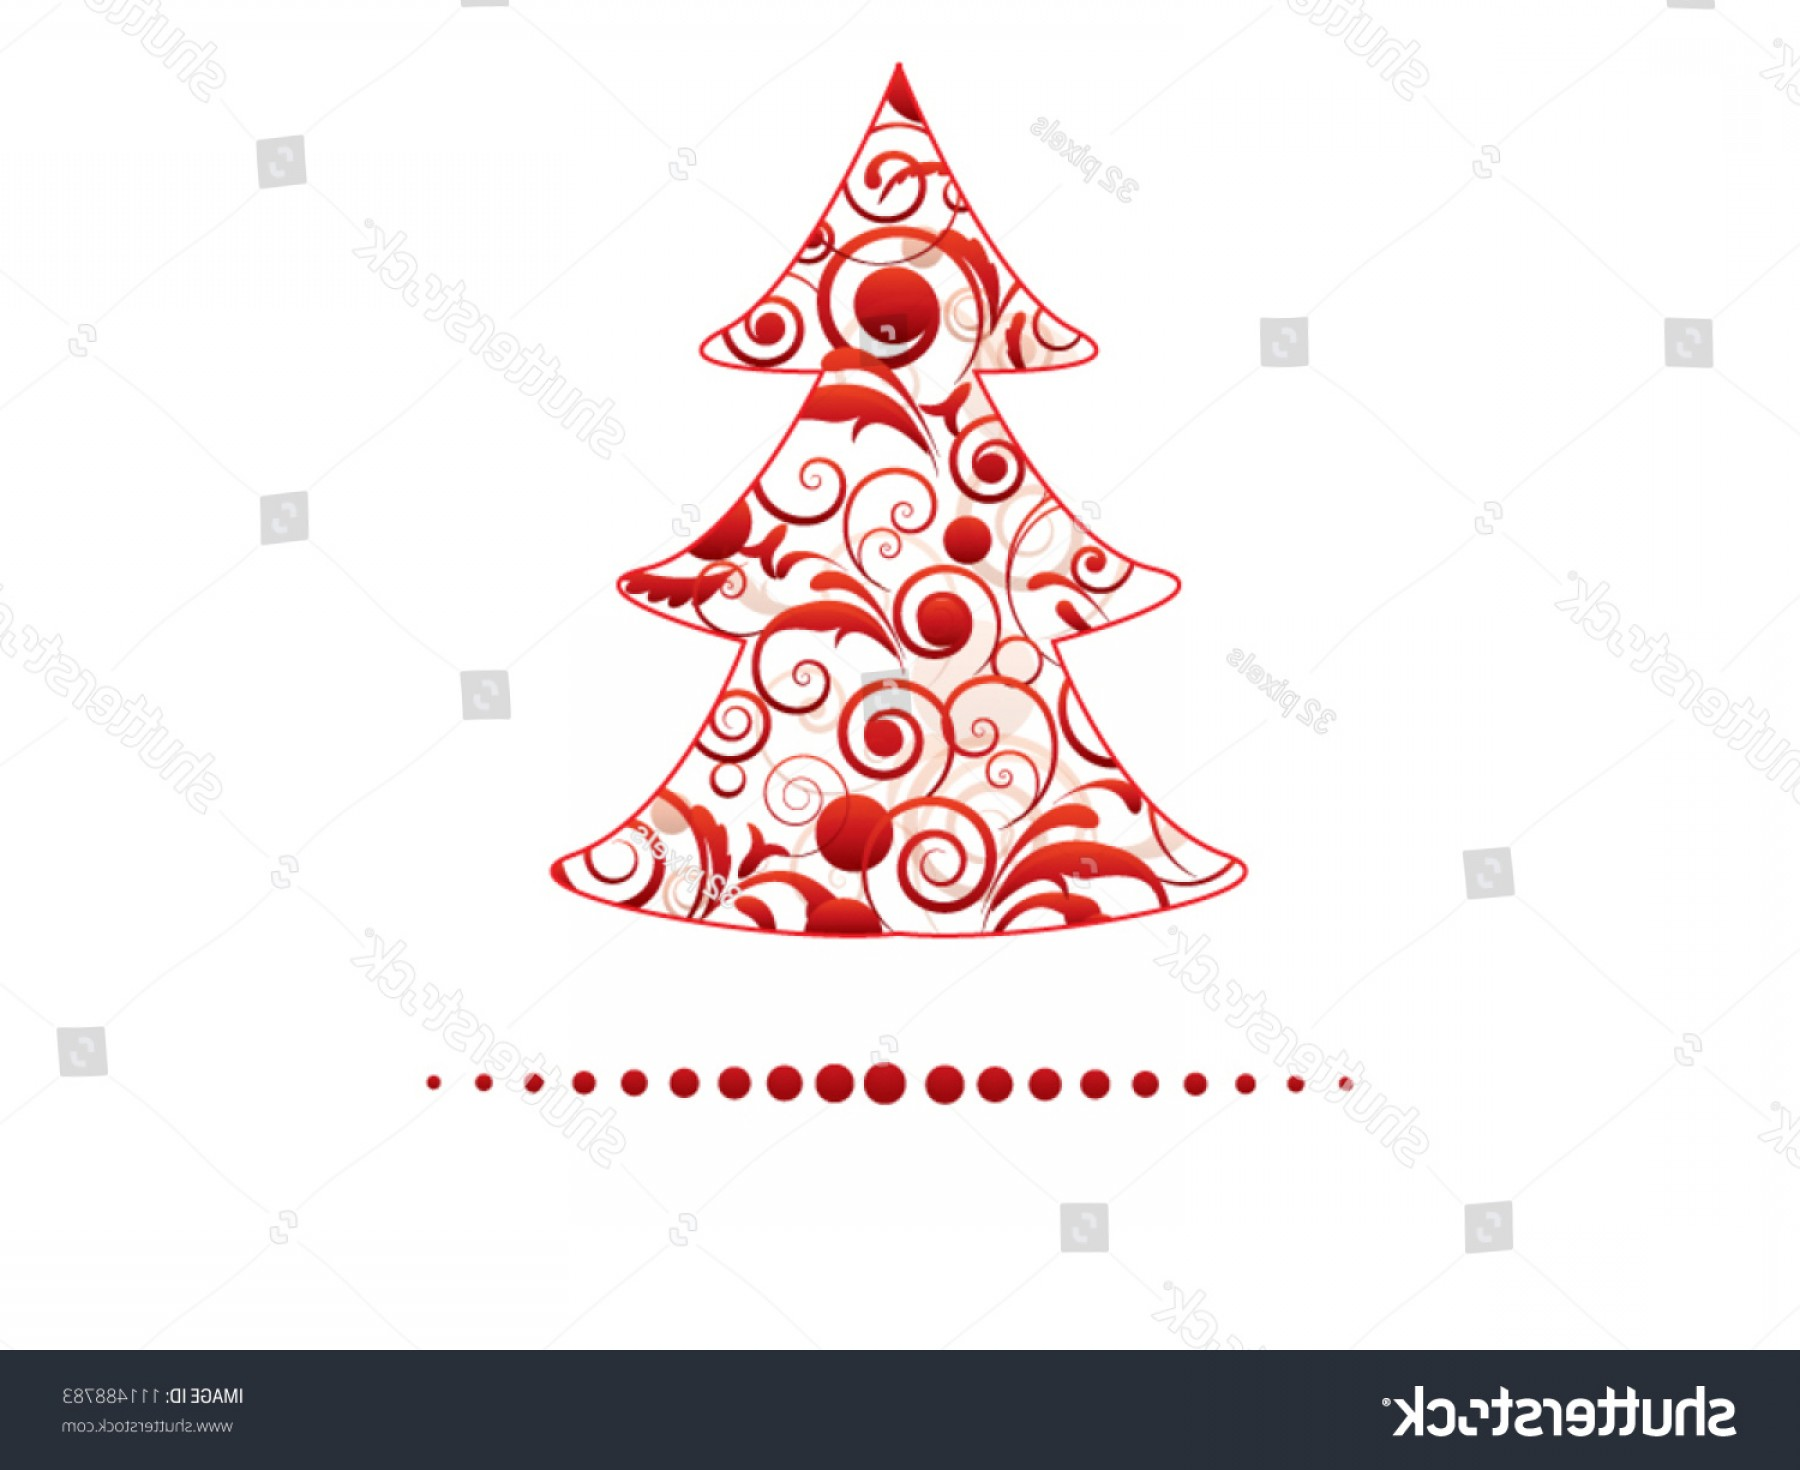 Swirly Christmas Tree Vector: Red Christmas Swirly Tree Floral Elements